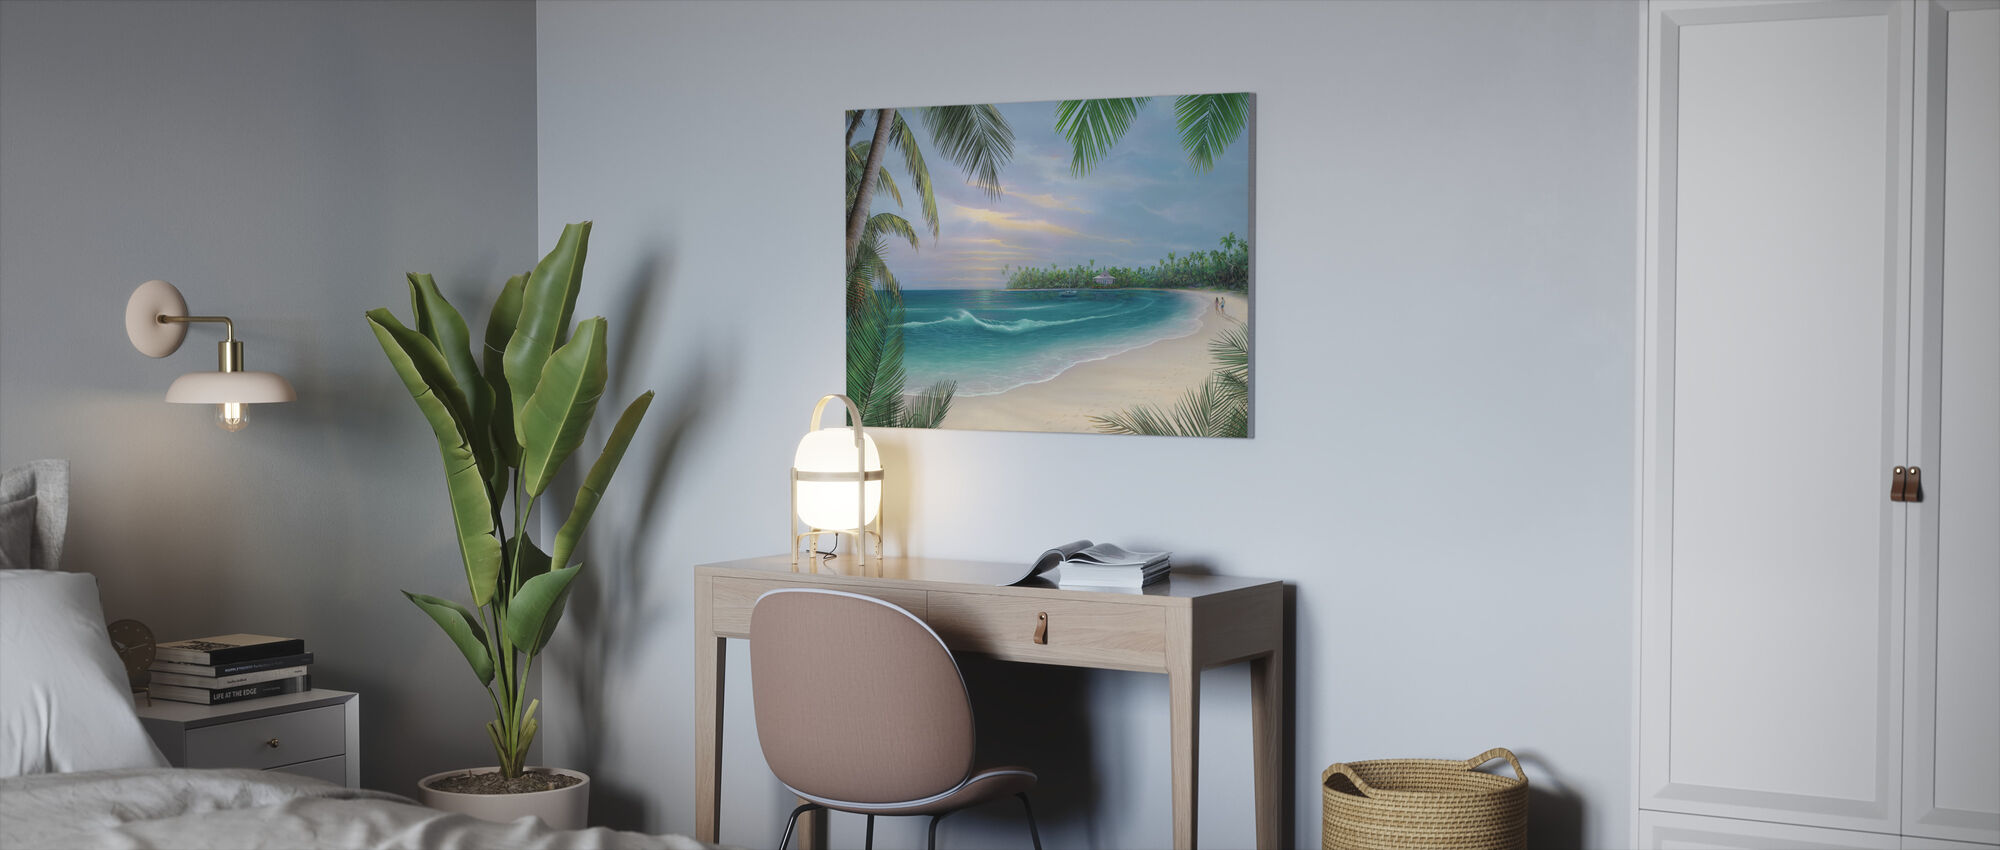 Beach House Rendezvous - Canvas print - Kantoor